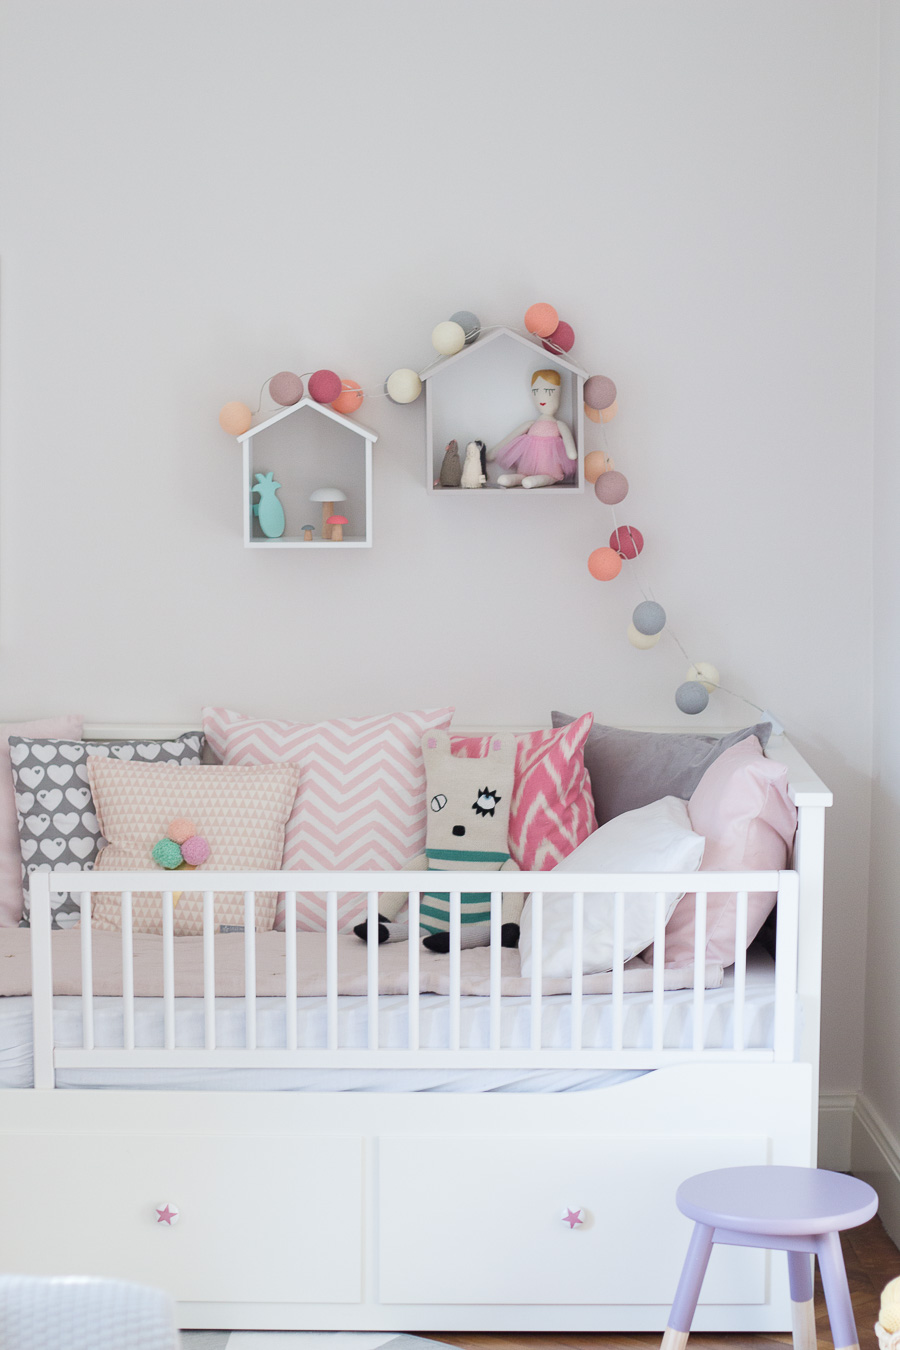 Kinderbett Ab 1 Jahr Inspiration Ikea Hemnes Daybed Pimpen Mother S Finest